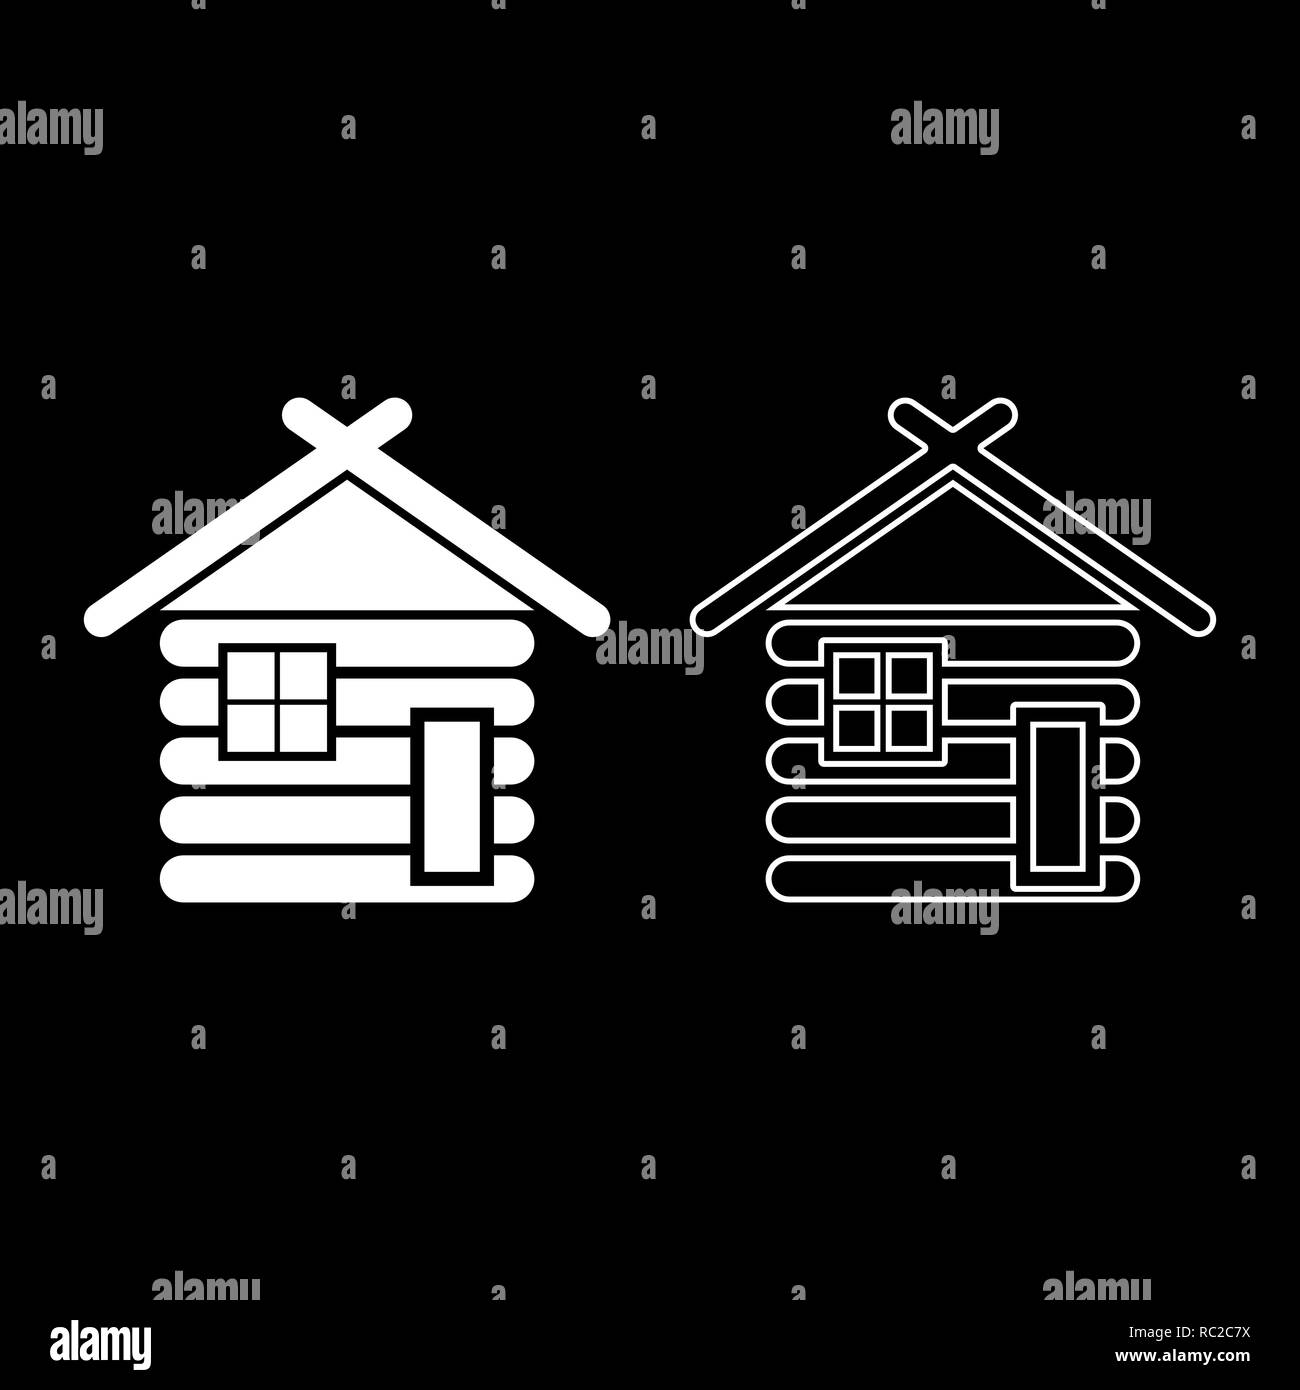 Wooden house Barn with wood Modular log cabins Wood cabin modular homes icon set white color I flat outline style simple image - Stock Vector